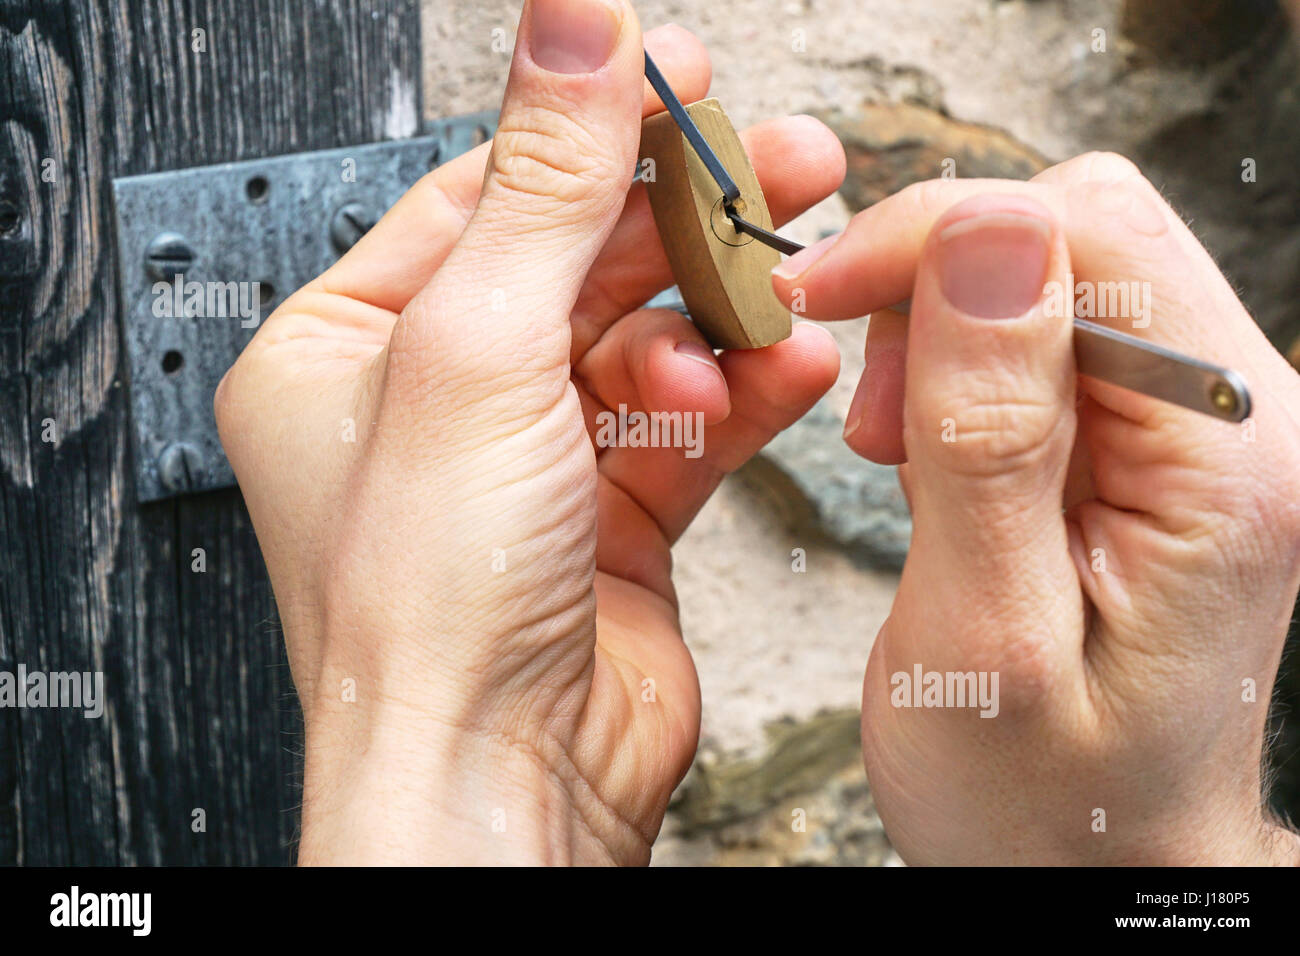 Key service, locksmith or burglar uses a lock-picking tool to open a wood door. Only hands, no persons. - Stock Image